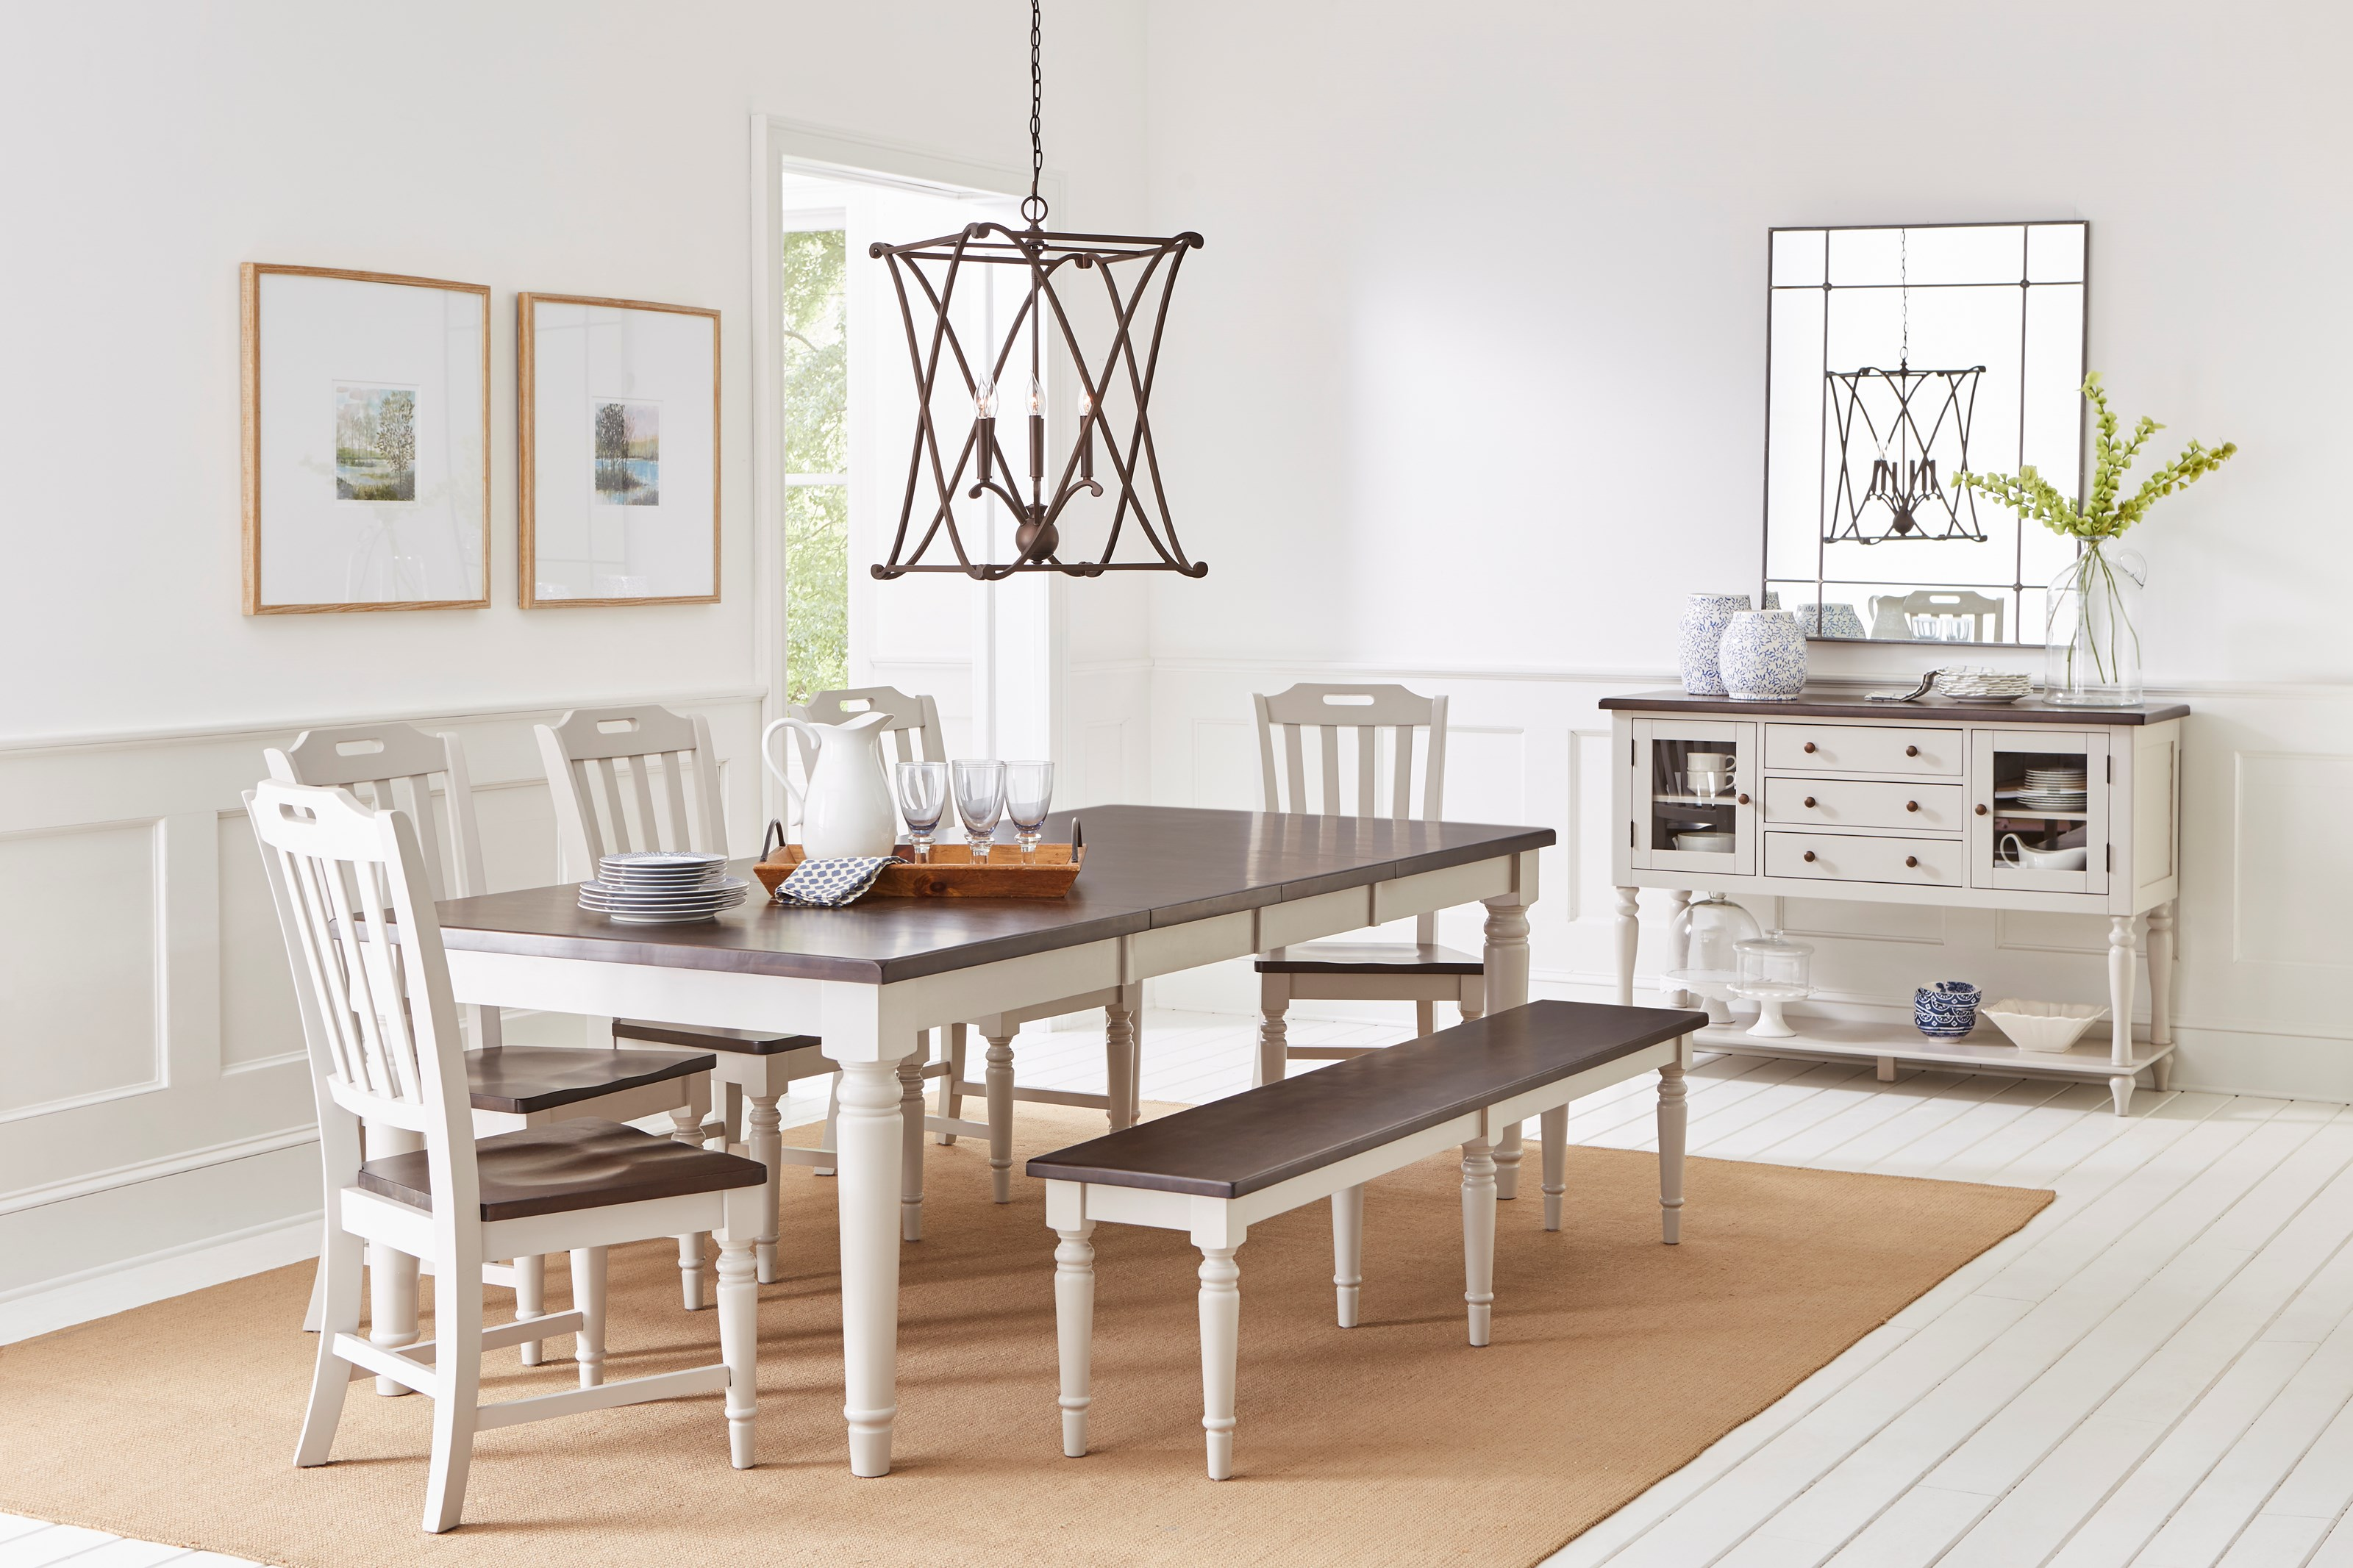 Orchard Park Dining Table with 6 Chairs and Bench by Jofran at Jofran